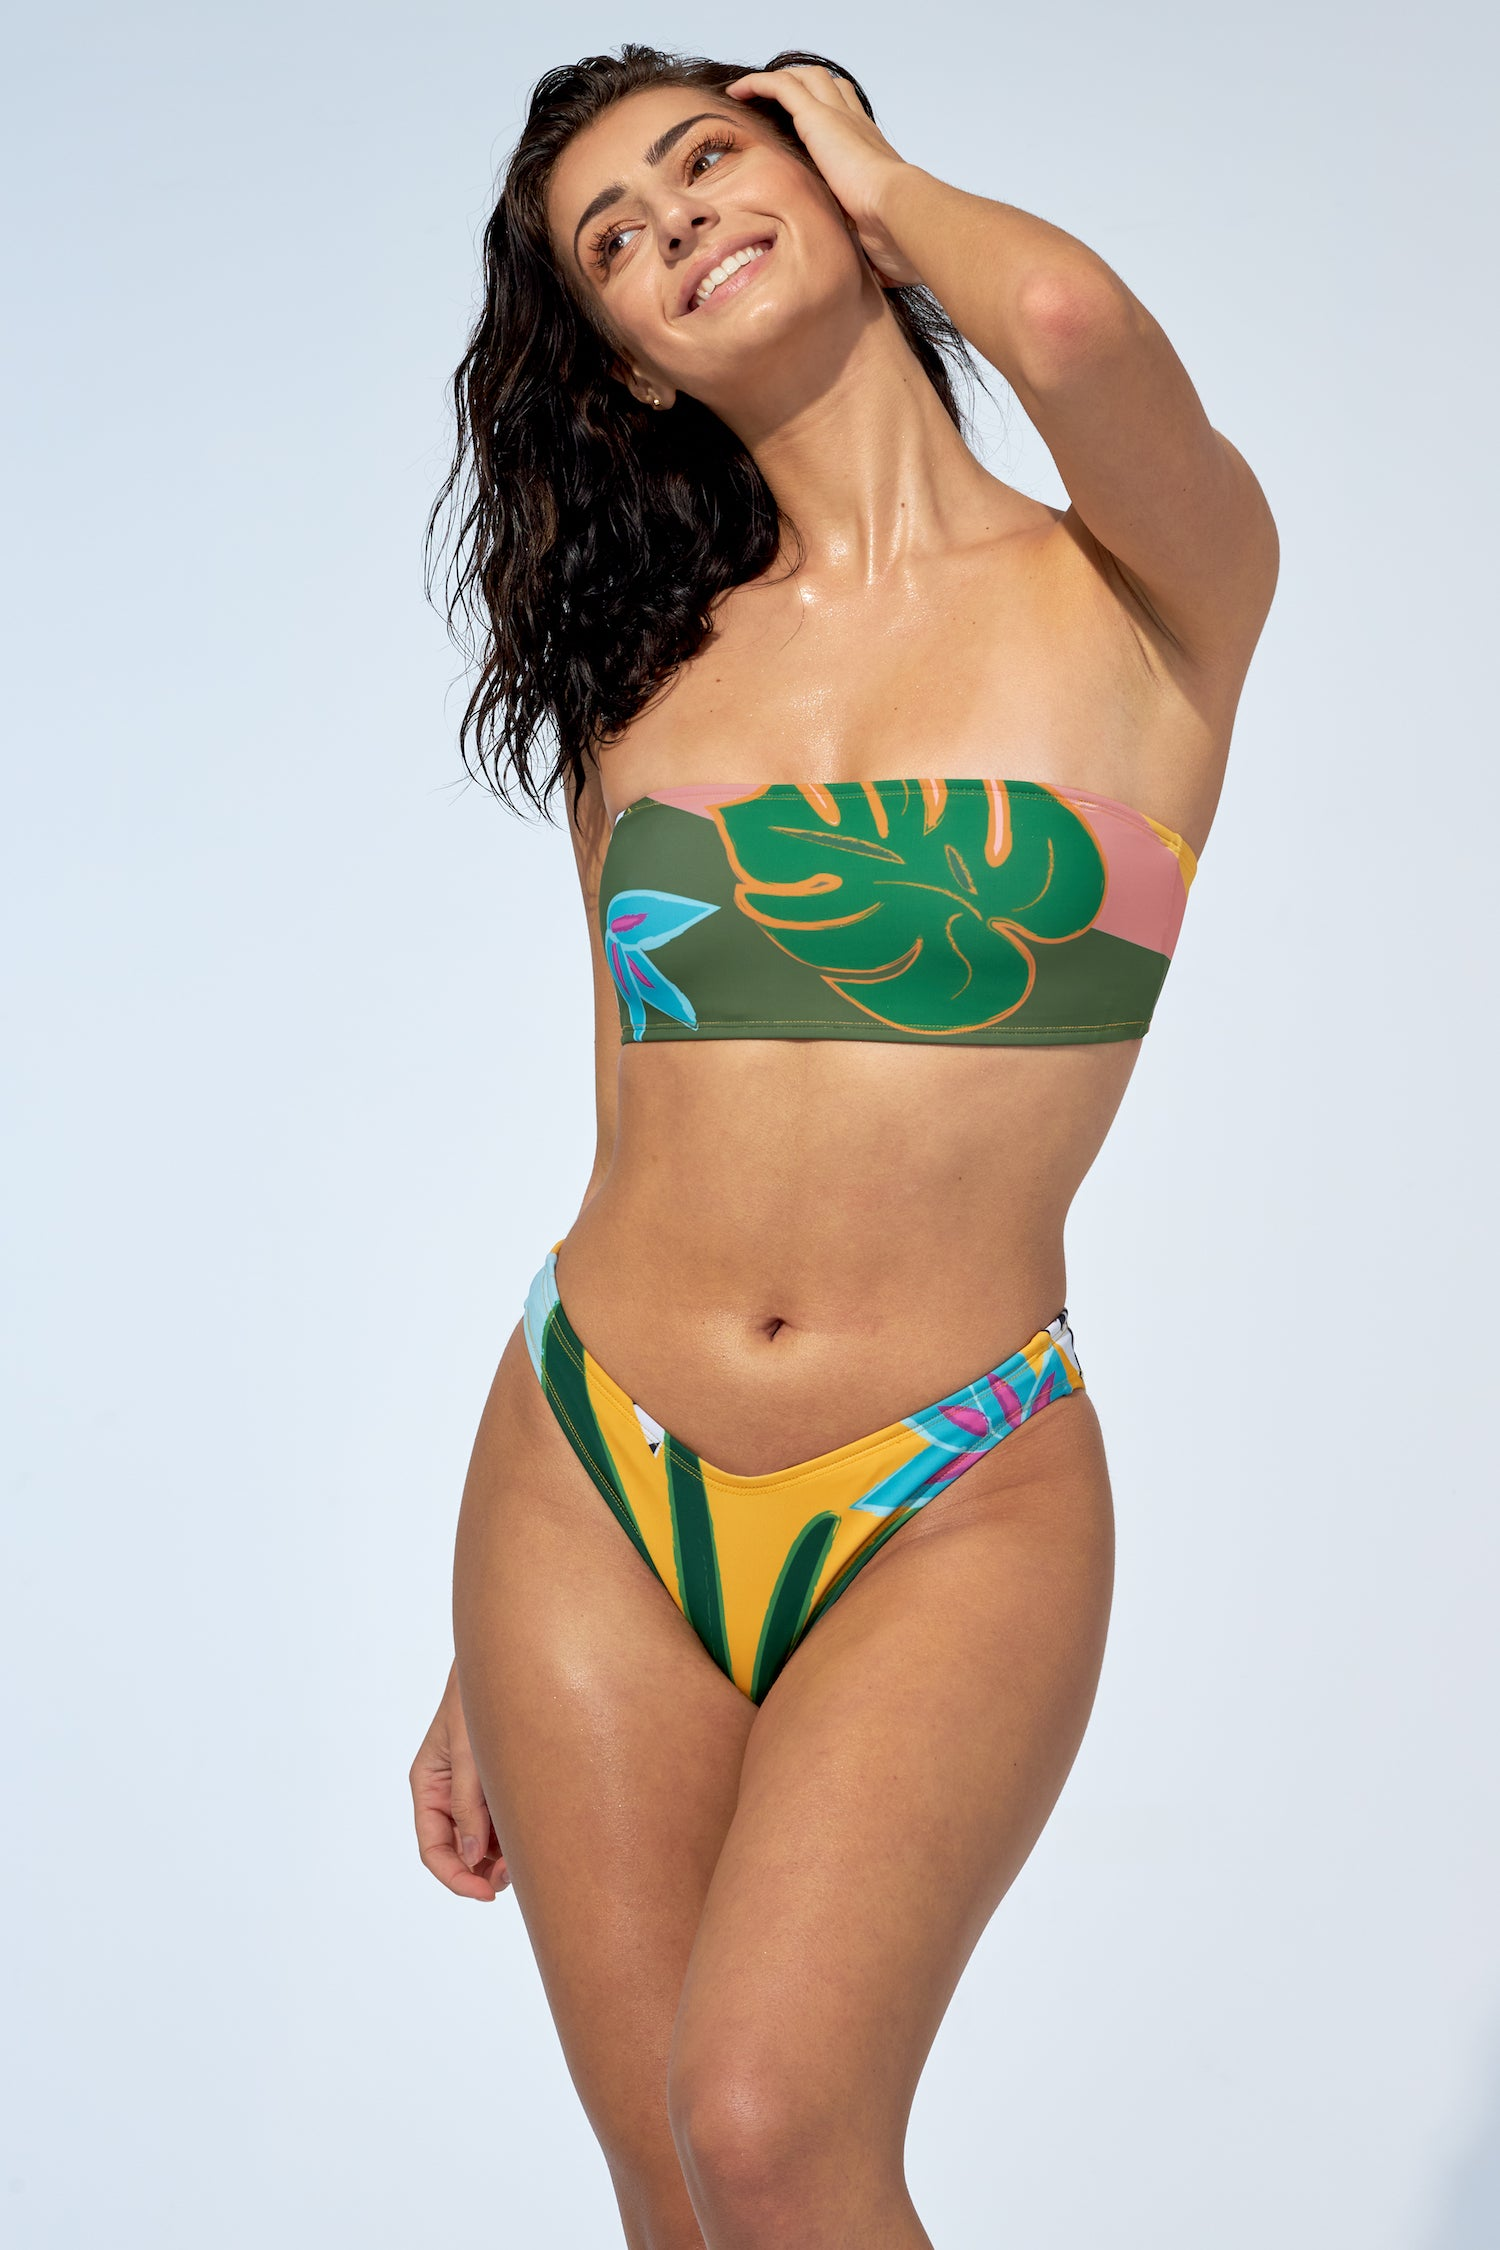 Women wearing tropical print bandeau bikini top and an indented low rise bikini bottom.